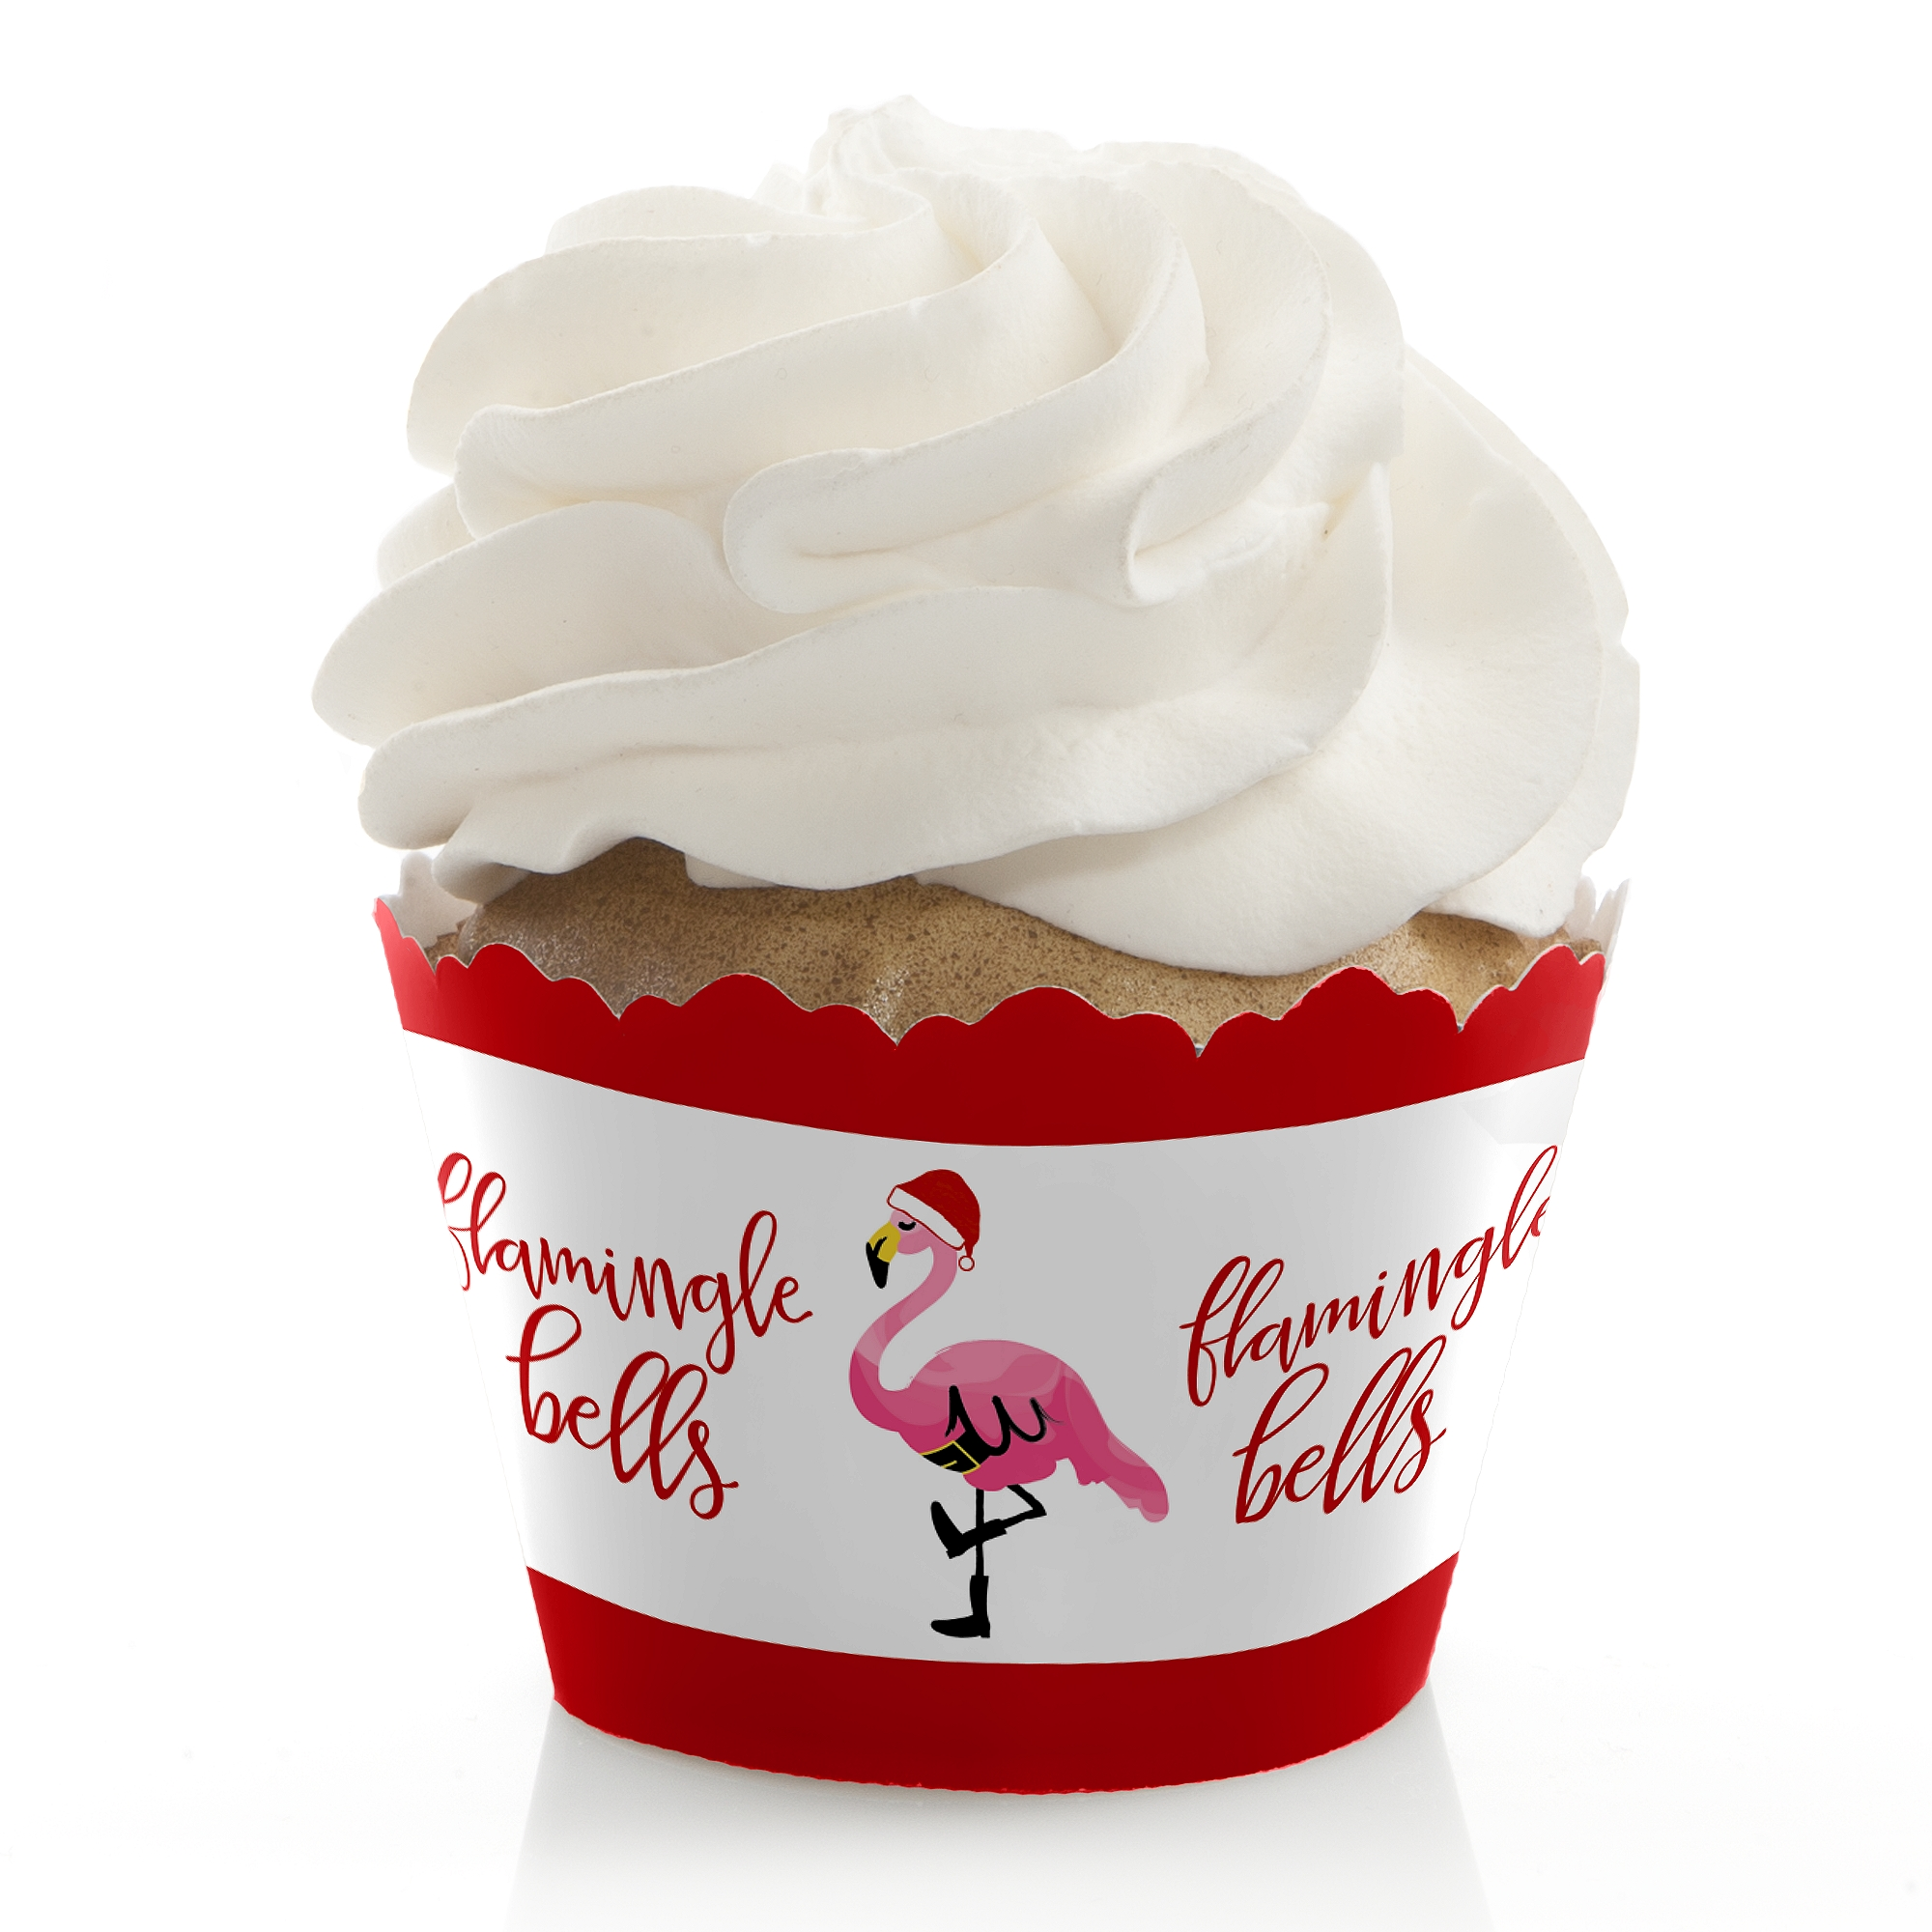 Flamingle Bells - Tropical Flamingo Christmas Party Cupcake Wrappers - Set of 12